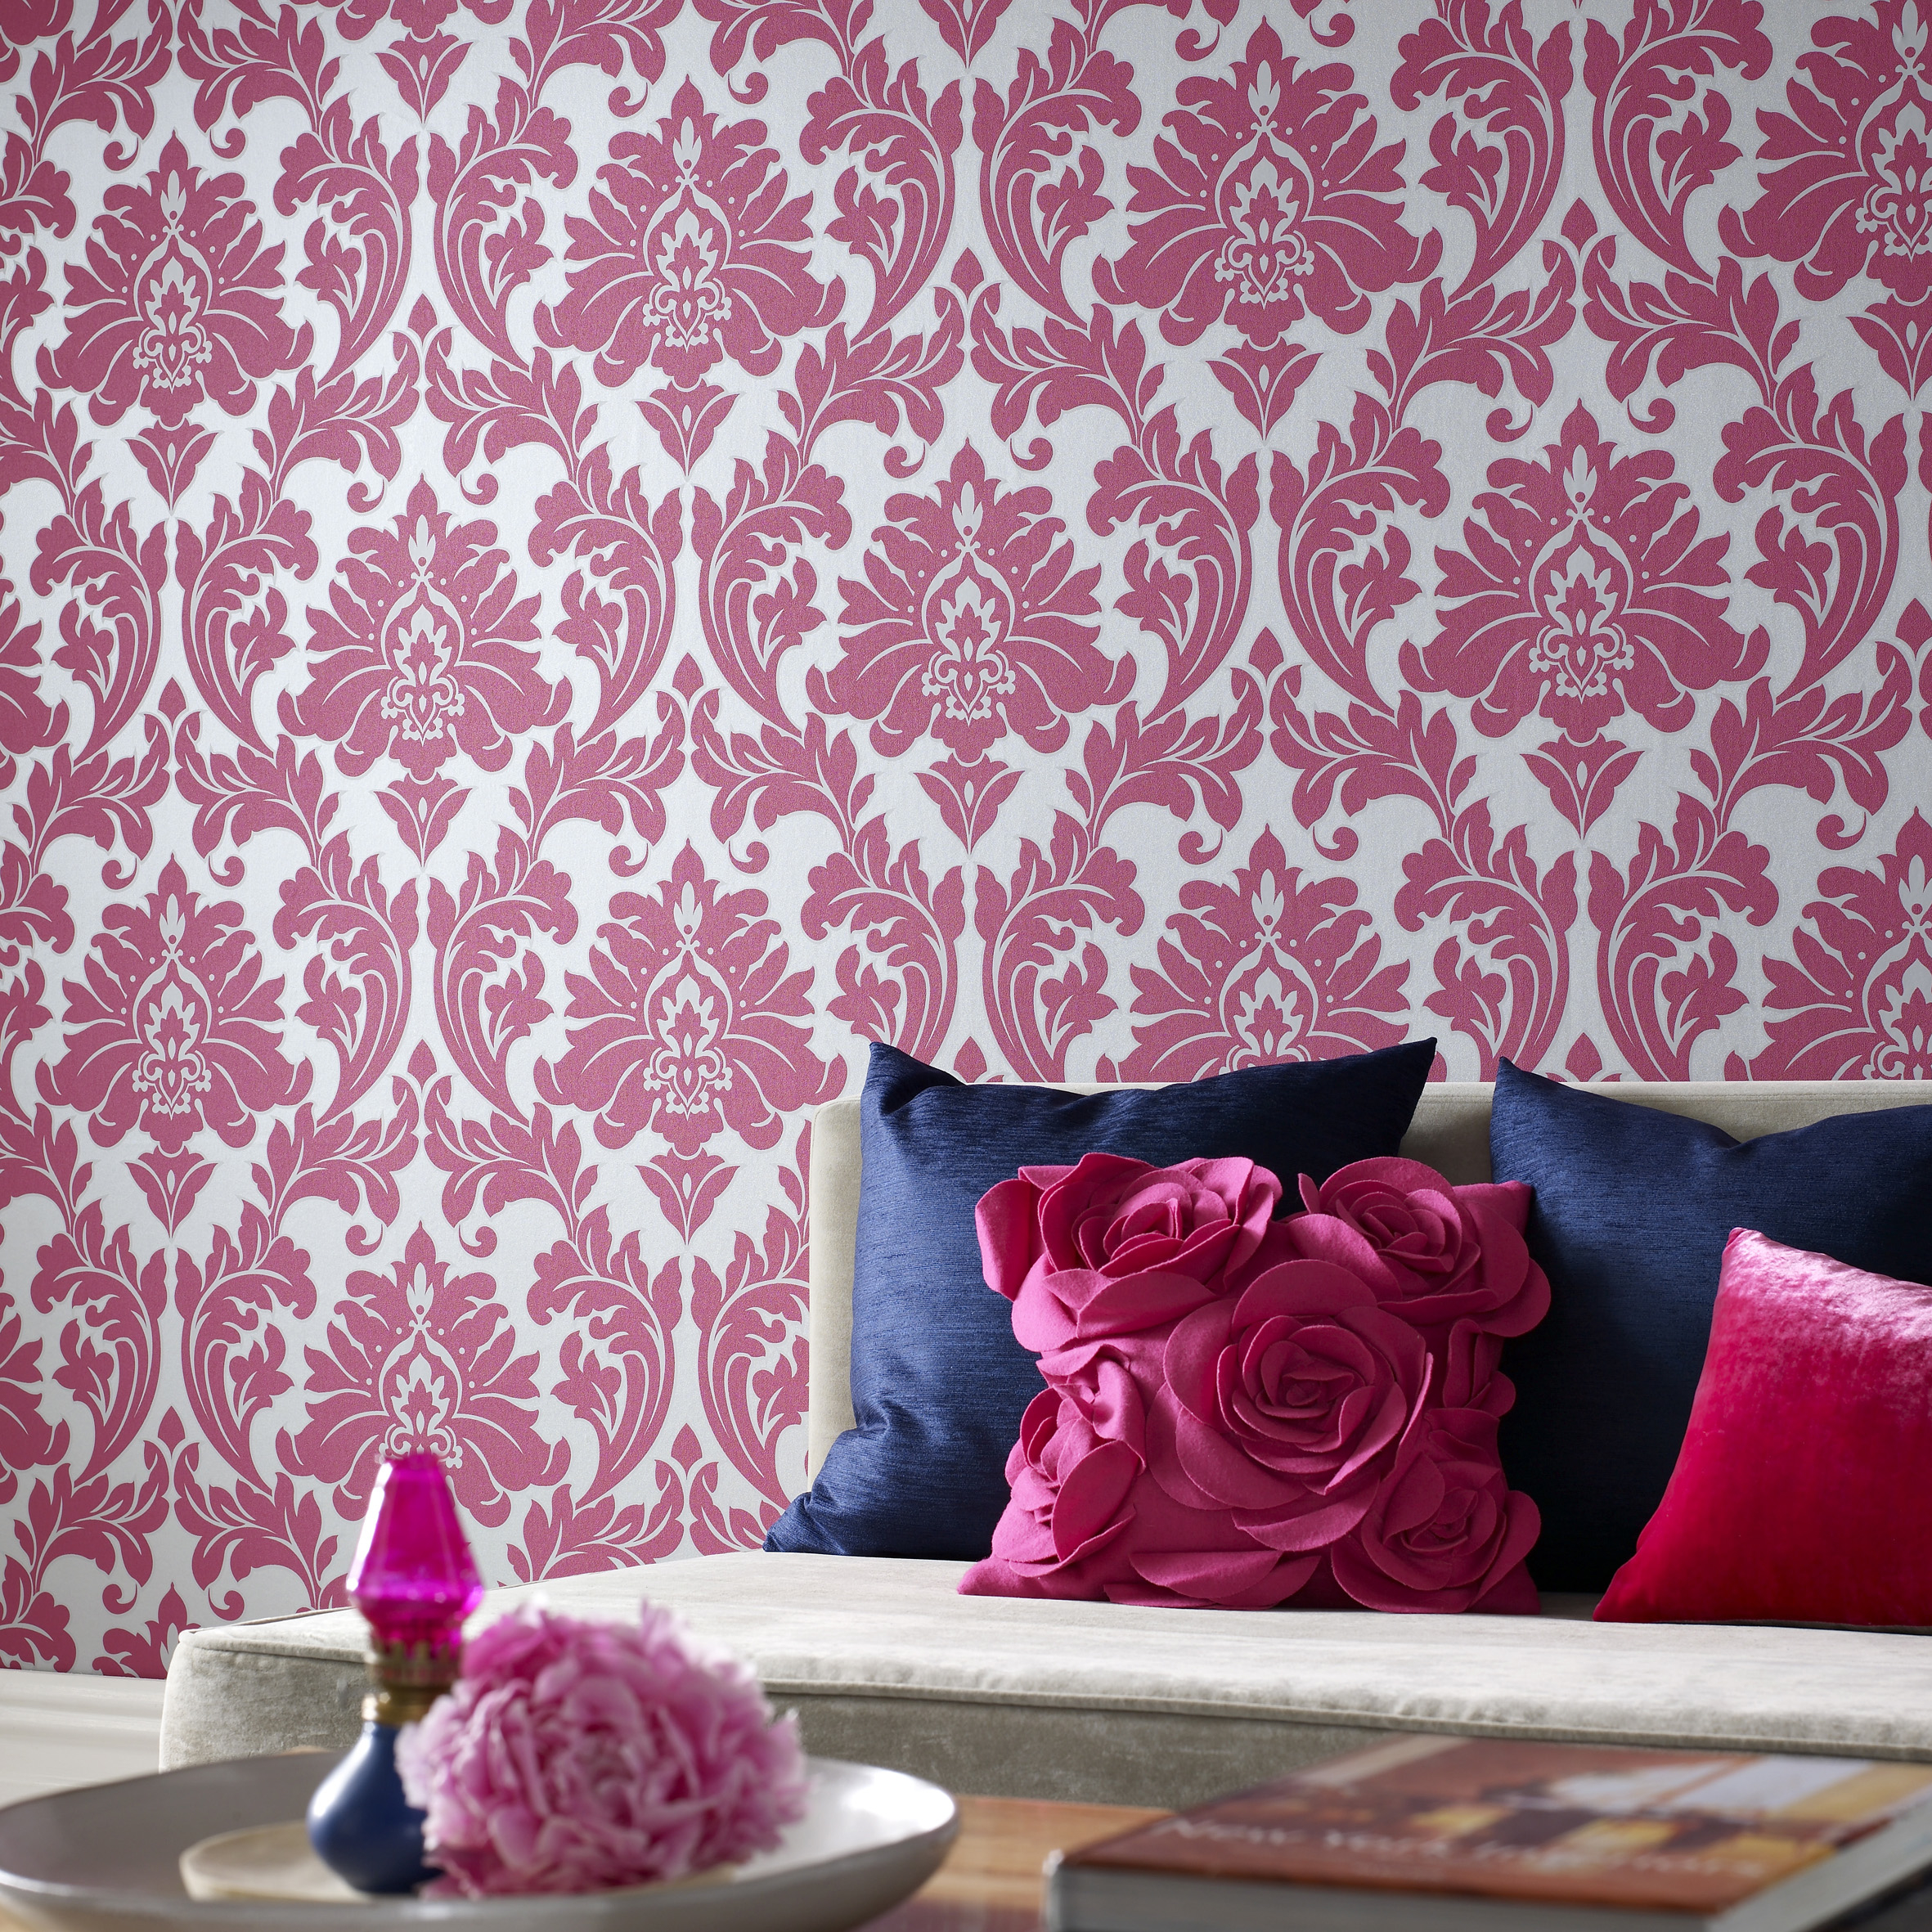 Fun-fancy-and-floral-pink-damask-class-wallpaper-wp5405144